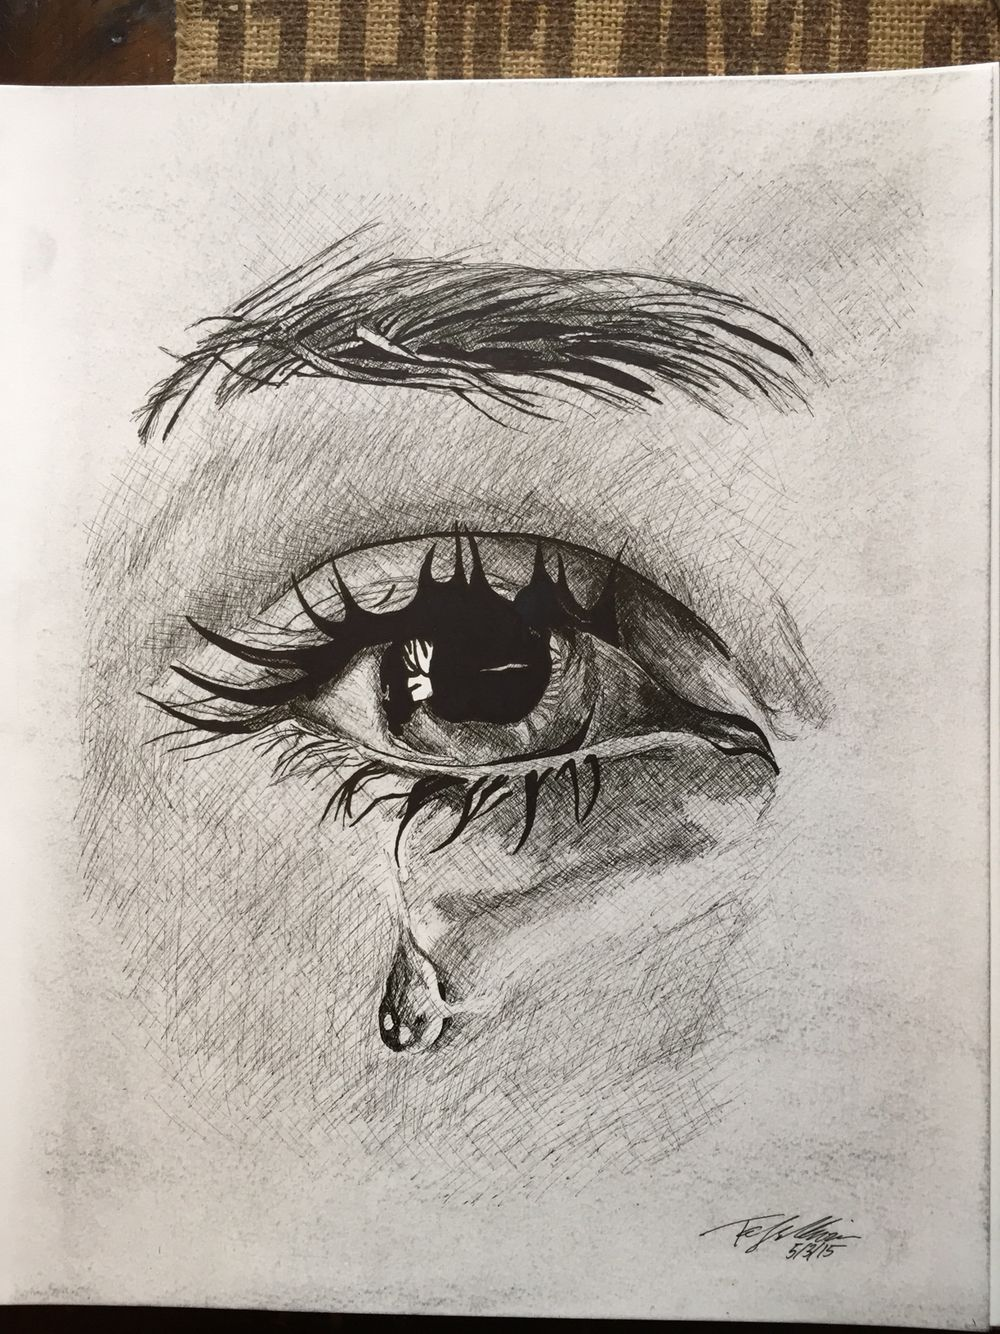 Drawing Of An Eye Crying : drawing, crying, #tear, #artist, #draw, #drawing, #sketch, #sketchaday, #sketchbook, ##myart, #illustration, #crossh…, Sketches,, Drawings, Sketches